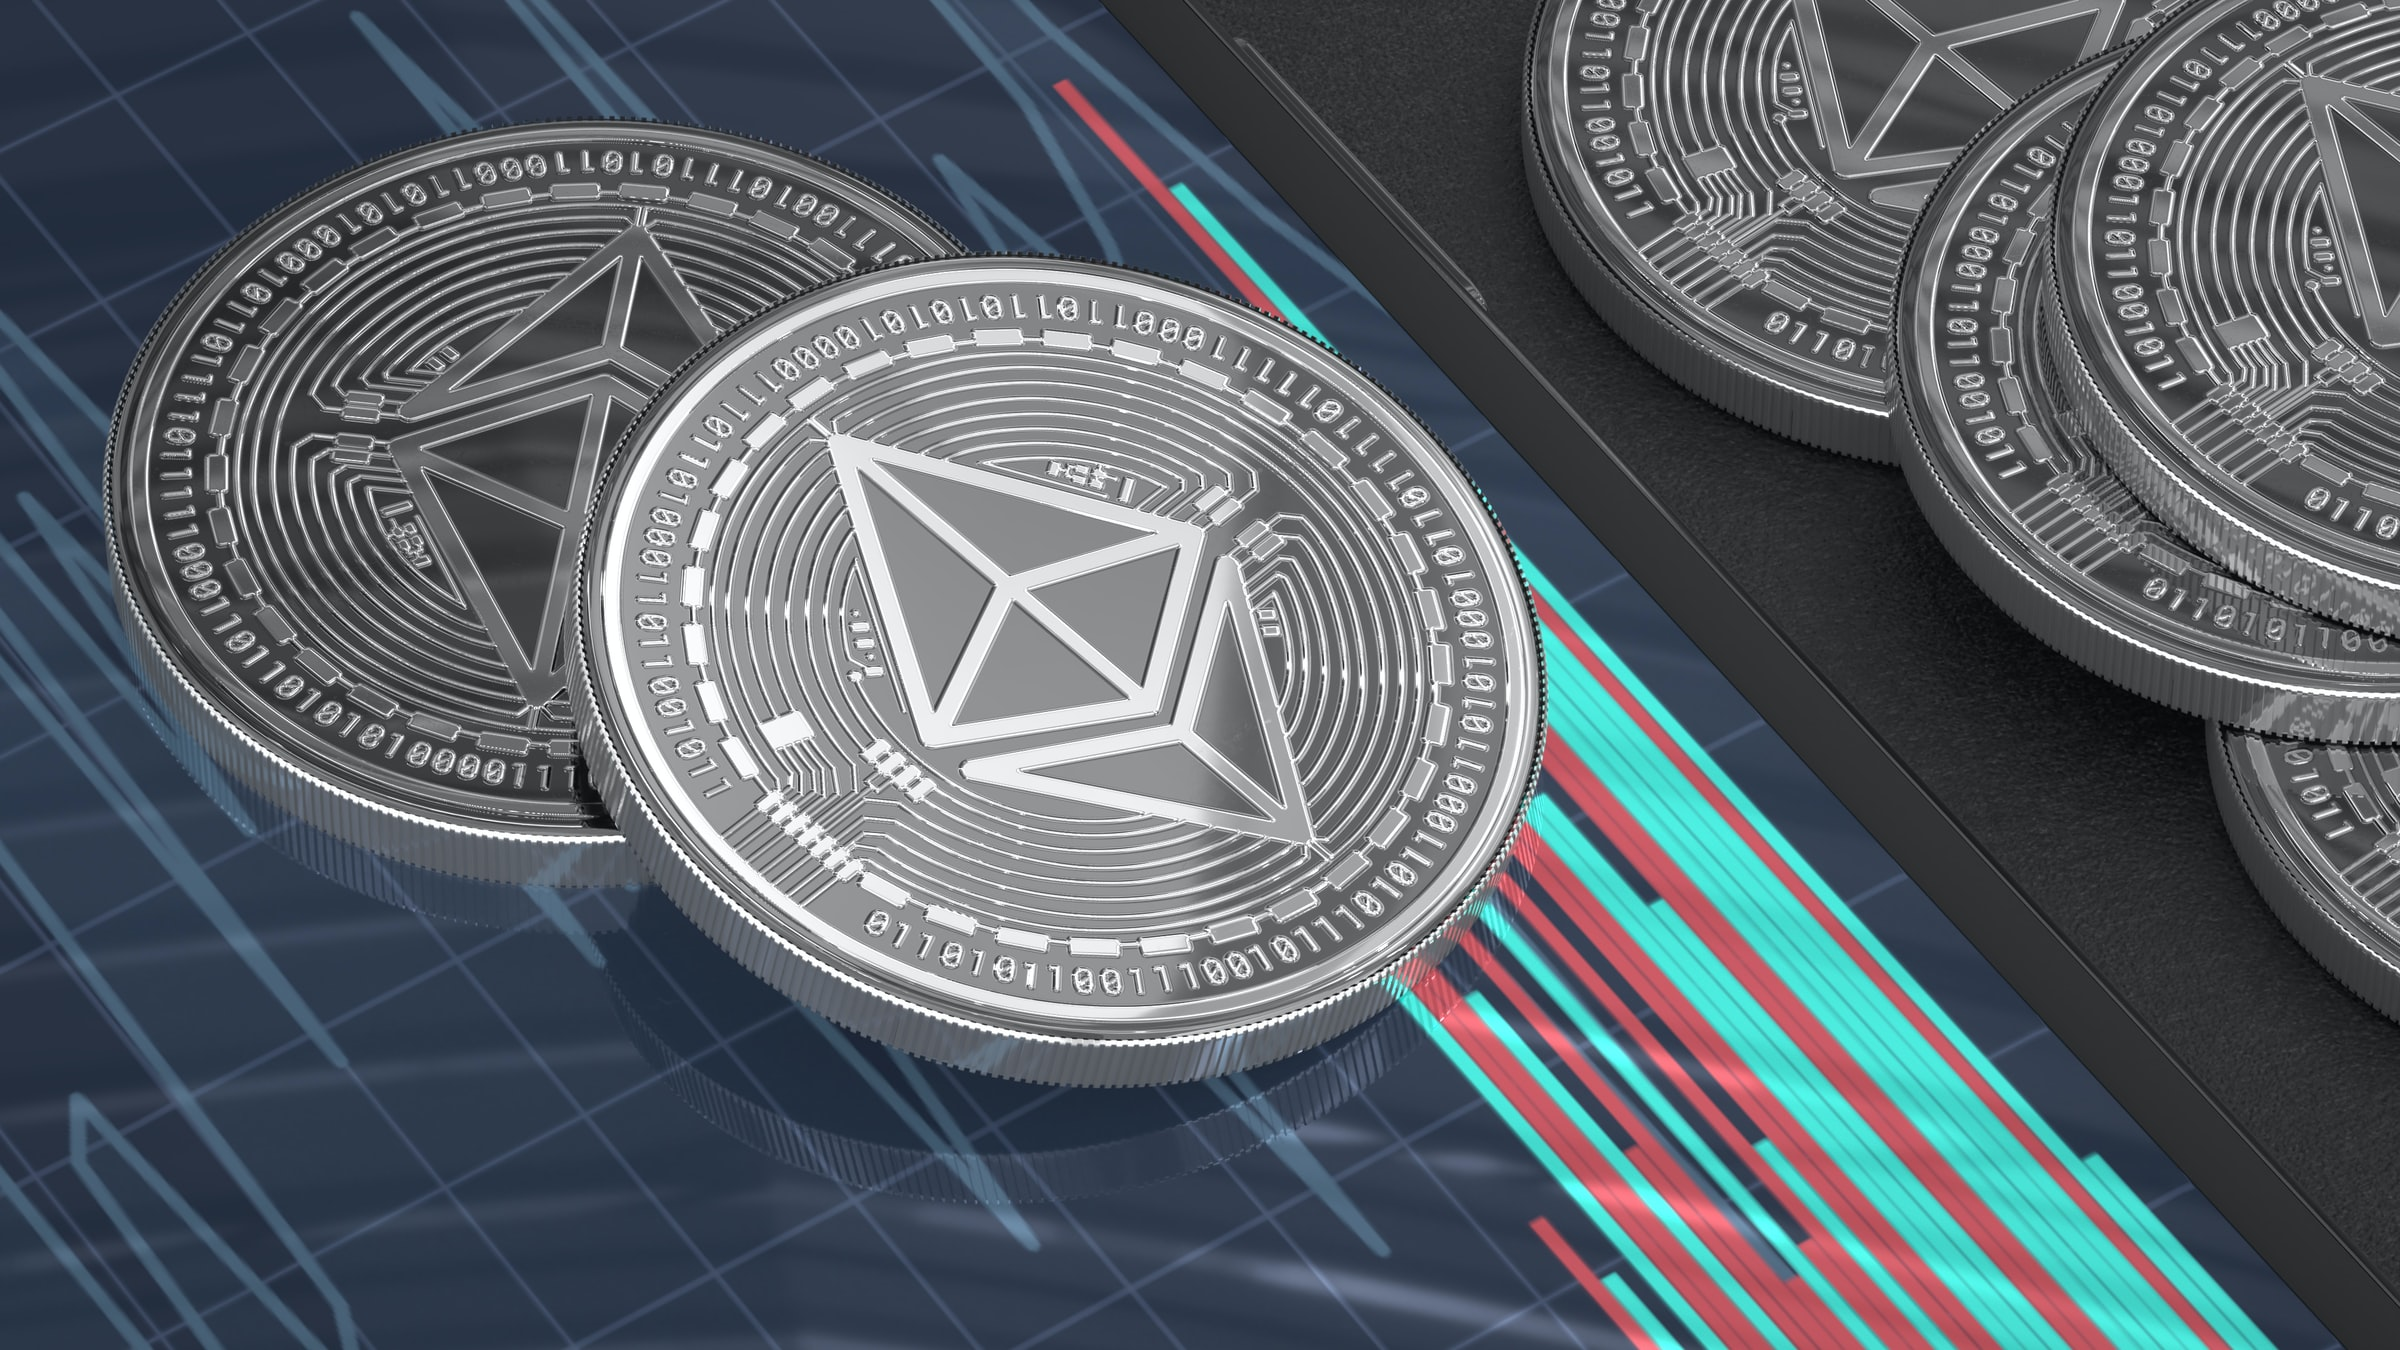 Ethereum's daily issuance turned negative for the first time